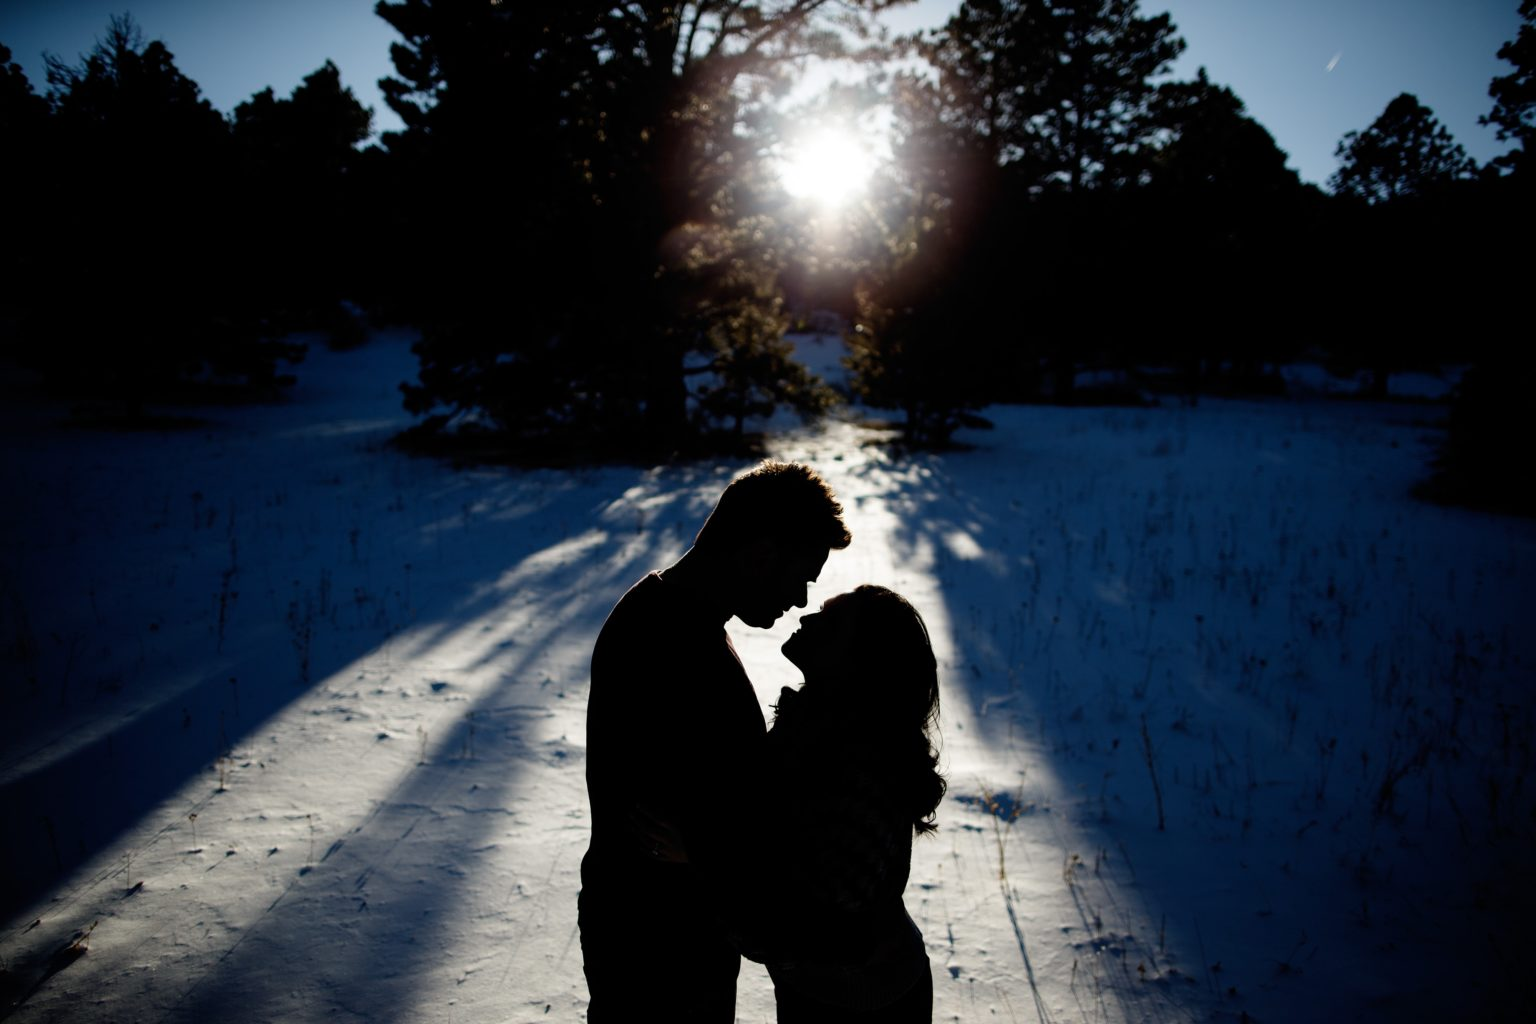 The sun casts shaddows in Elk Meadow Park as Melissa and Jordan pose together